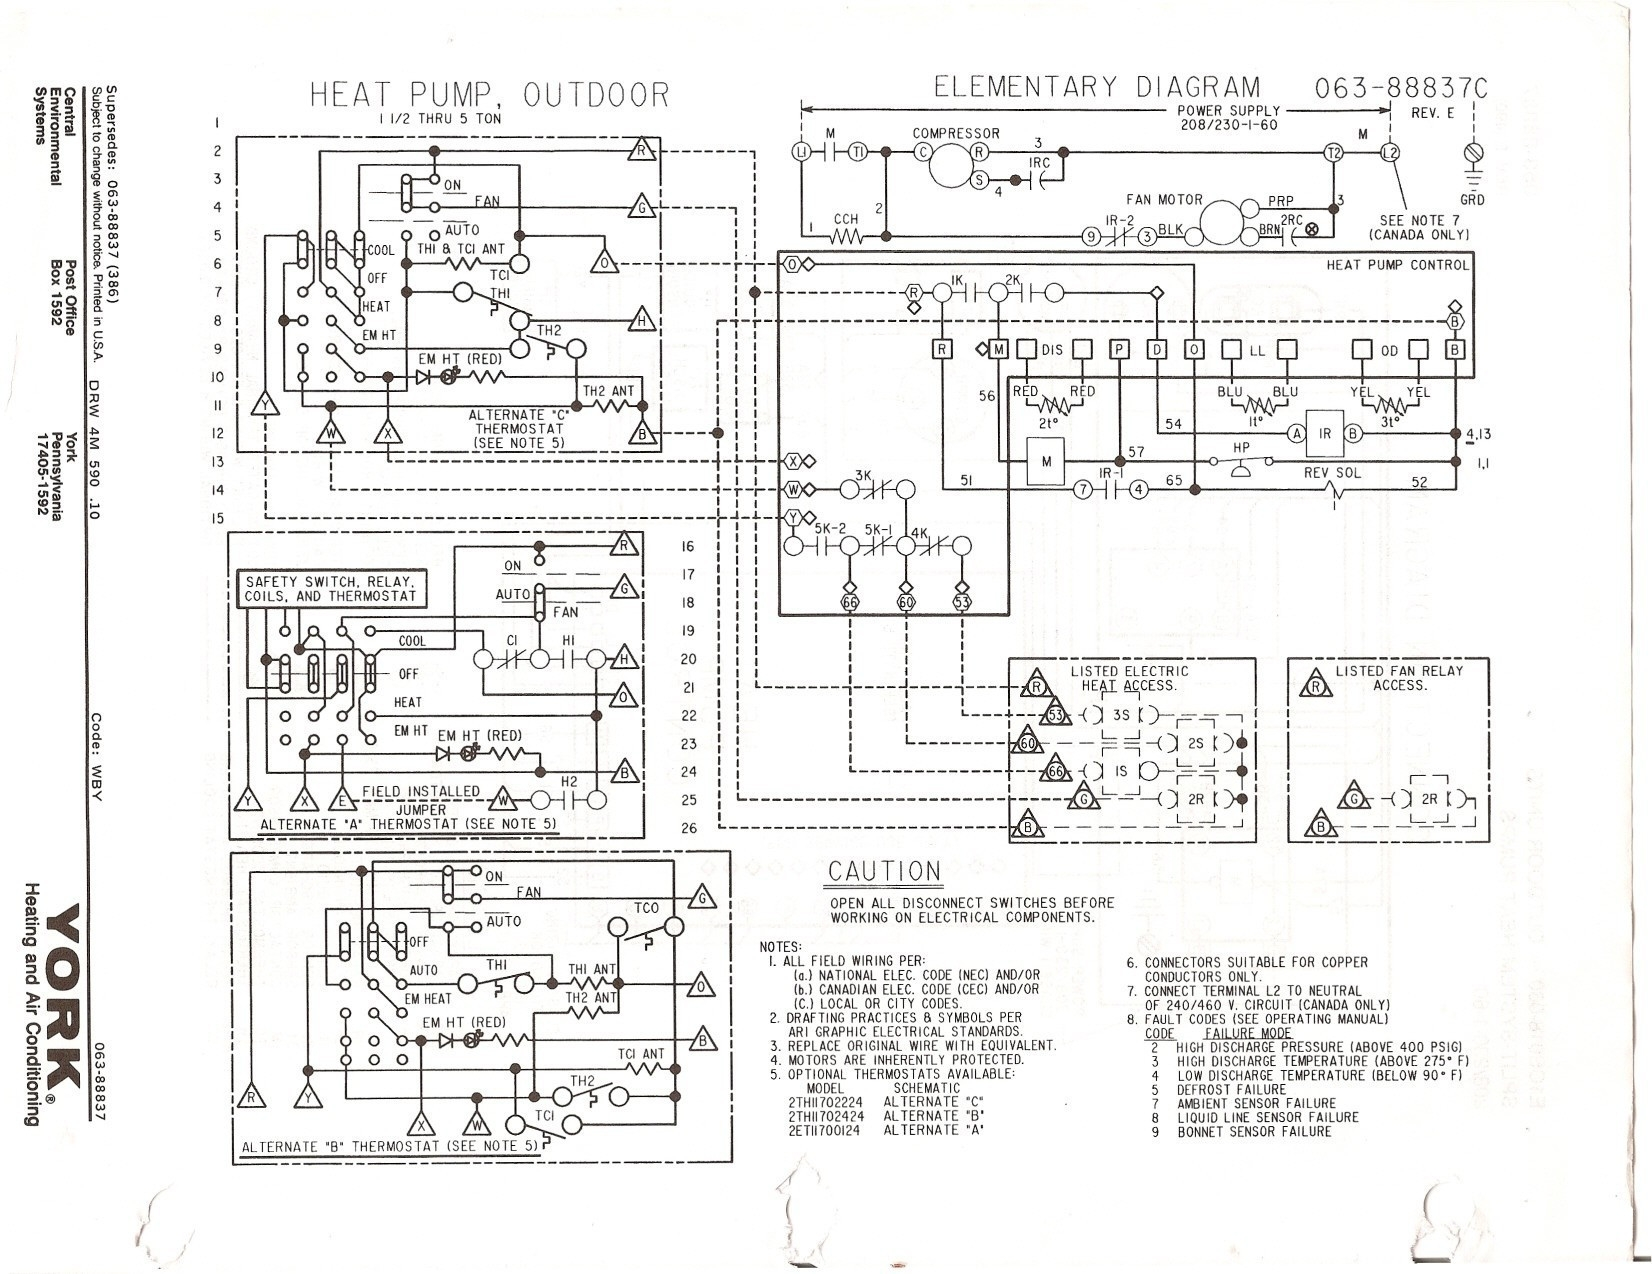 goodman heat pump air handler wiring diagram Download-Goodman Air Handler Wiring Diagram Best Heat Pump Entrancing 8-i